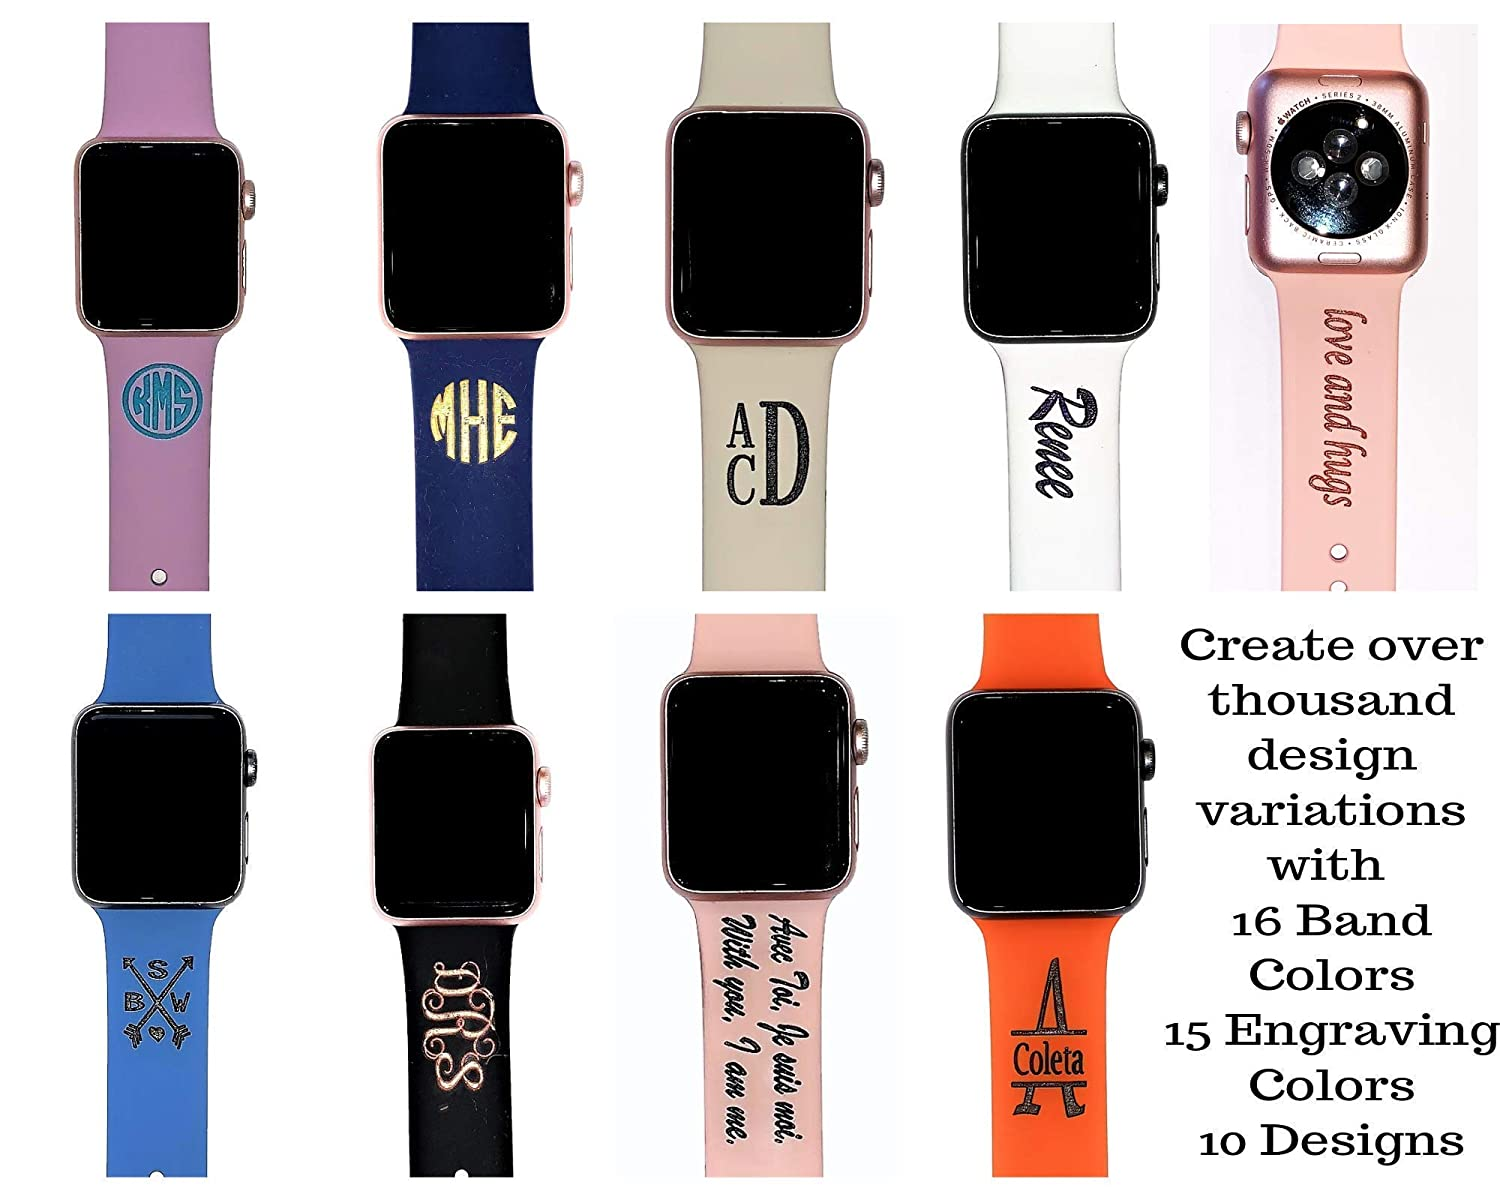 Amazon Com Silicone Watch Band Custom Silicone Watch Band Personalized Silicone Band Compatible With Apple Watch 38mm 40mm 42mm 44mm Monogram Watch Band Ships In 3 5 Business Days Handmade